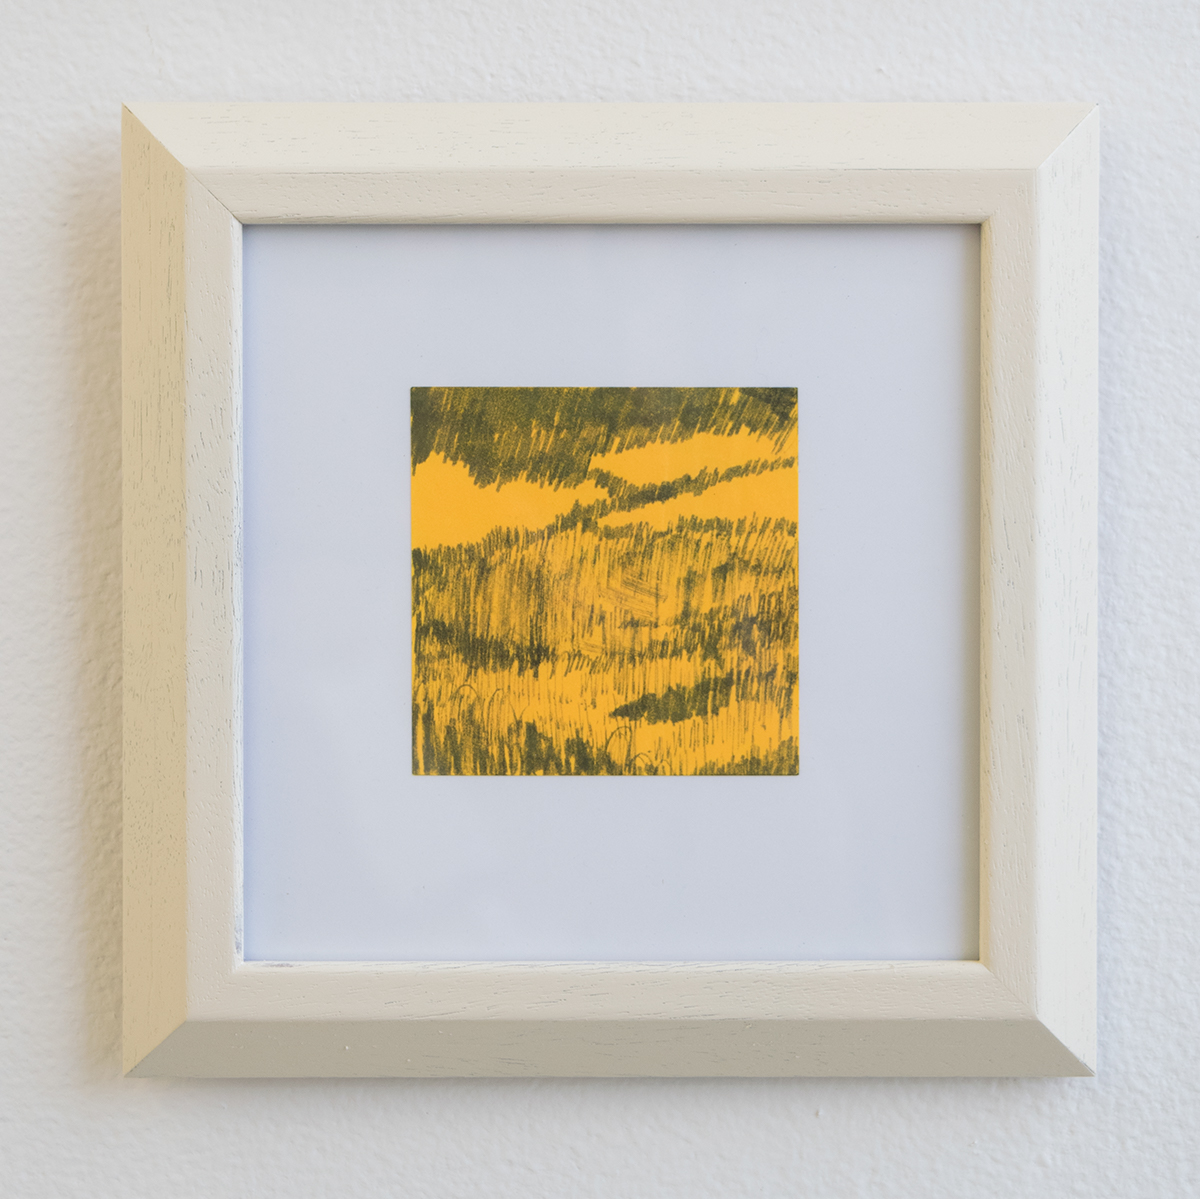 Landscape on Post-it #2, 2018